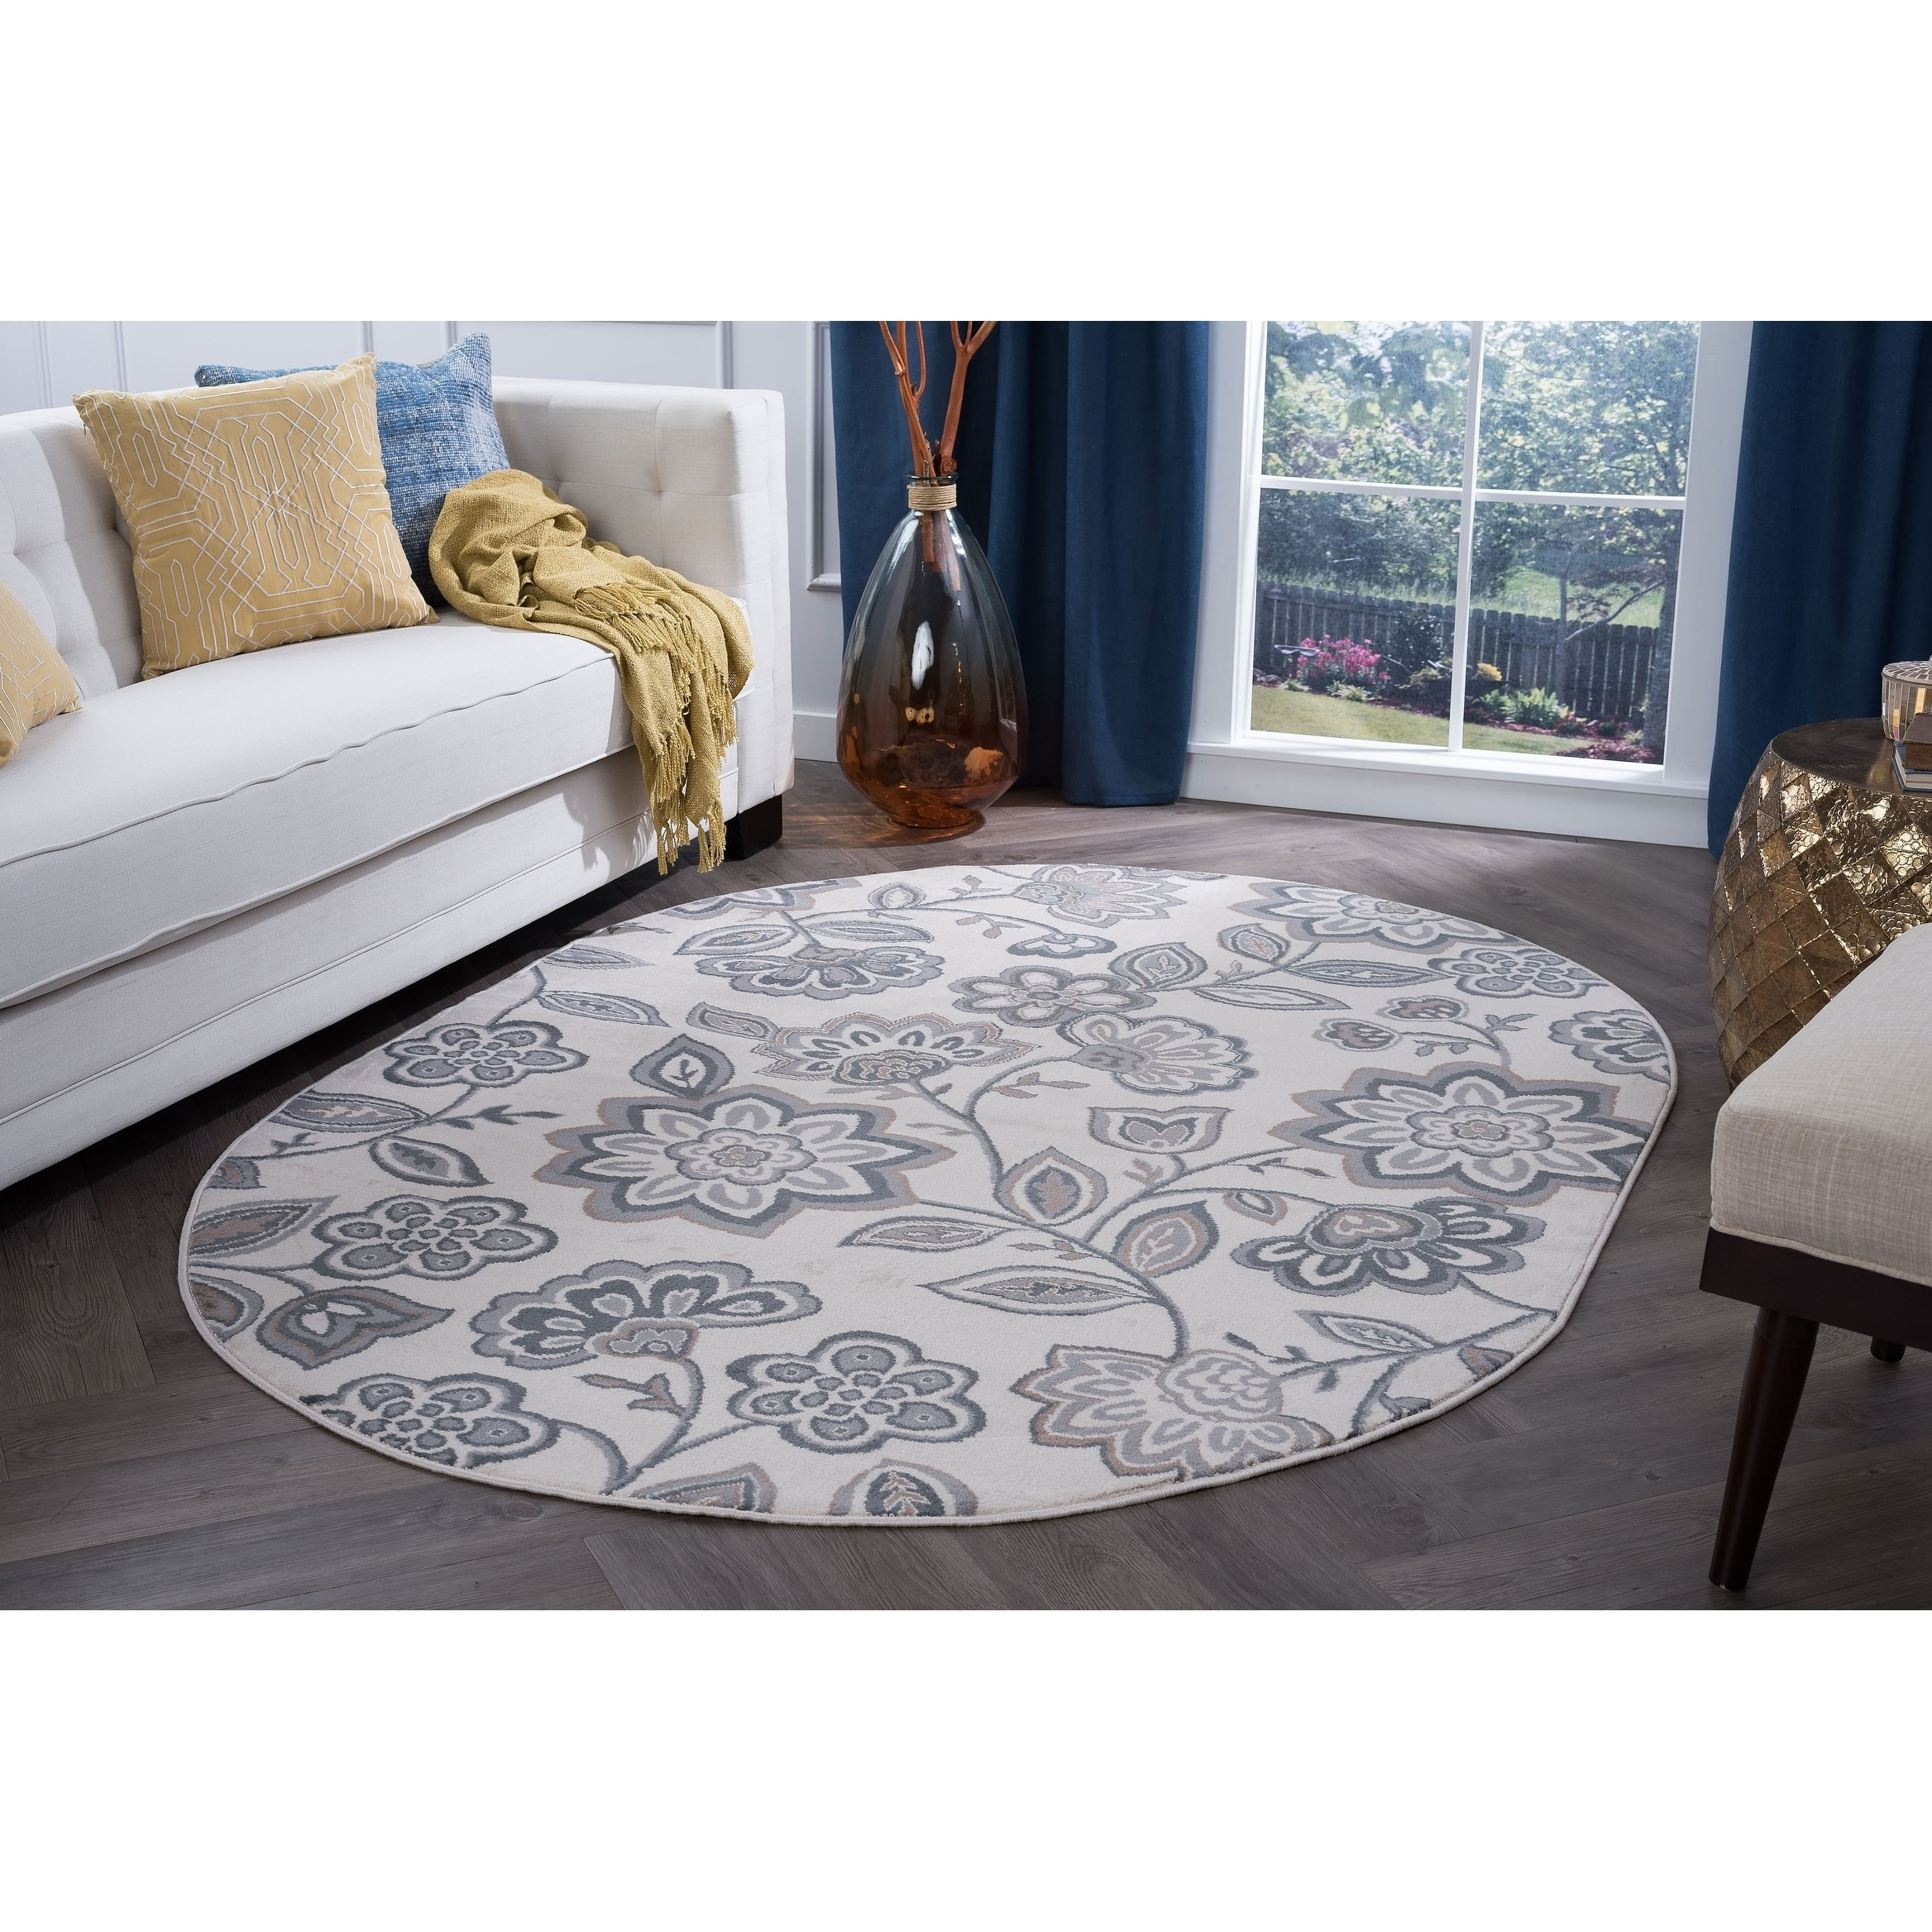 Alise Rugs  Carrington Transitional Floral Oval Area Rug